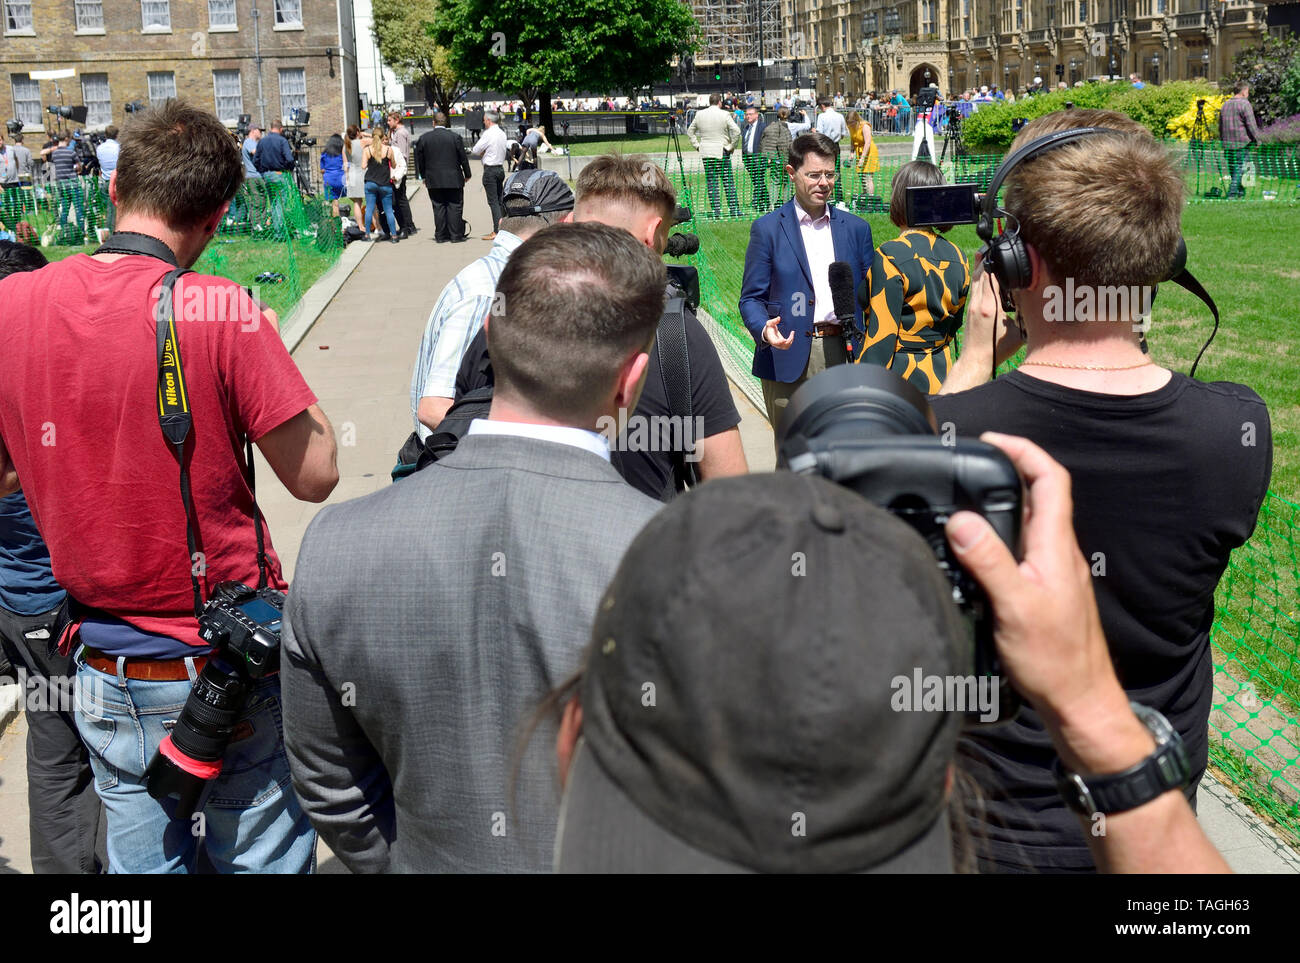 James Brokenshire MP, Secretary of State for Housing, Communities and Local Governmen, interviewed on College Green, Westminster, 24th May 2019, the d Stock Photo